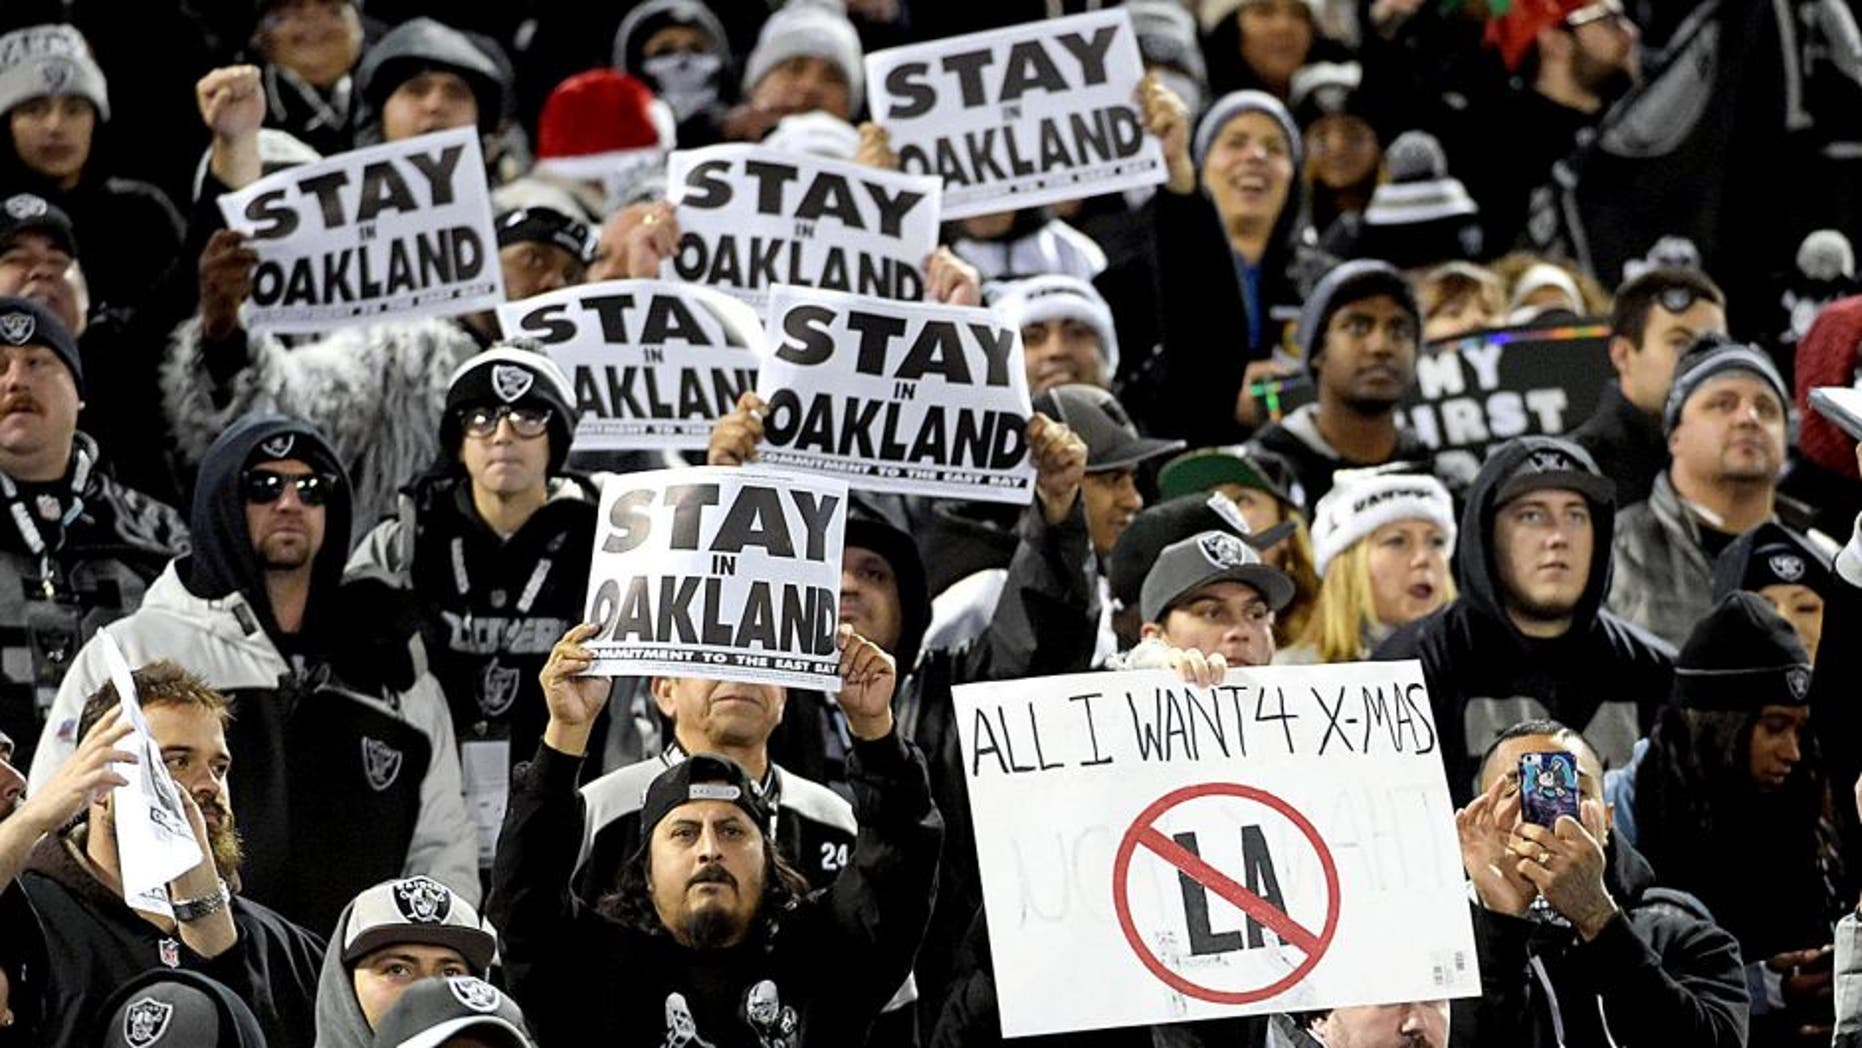 """Dec 24, 2015; Oakland, CA, USA; Oakland Raiders fans hold signs that read """"Stay in Oakland"""" in opposition of the Raiders potential move to Los Angeles during an NFL football game against the San Diego Chargers at O.co Coliseum. Mandatory Credit: Kirby Lee-USA TODAY Sports"""